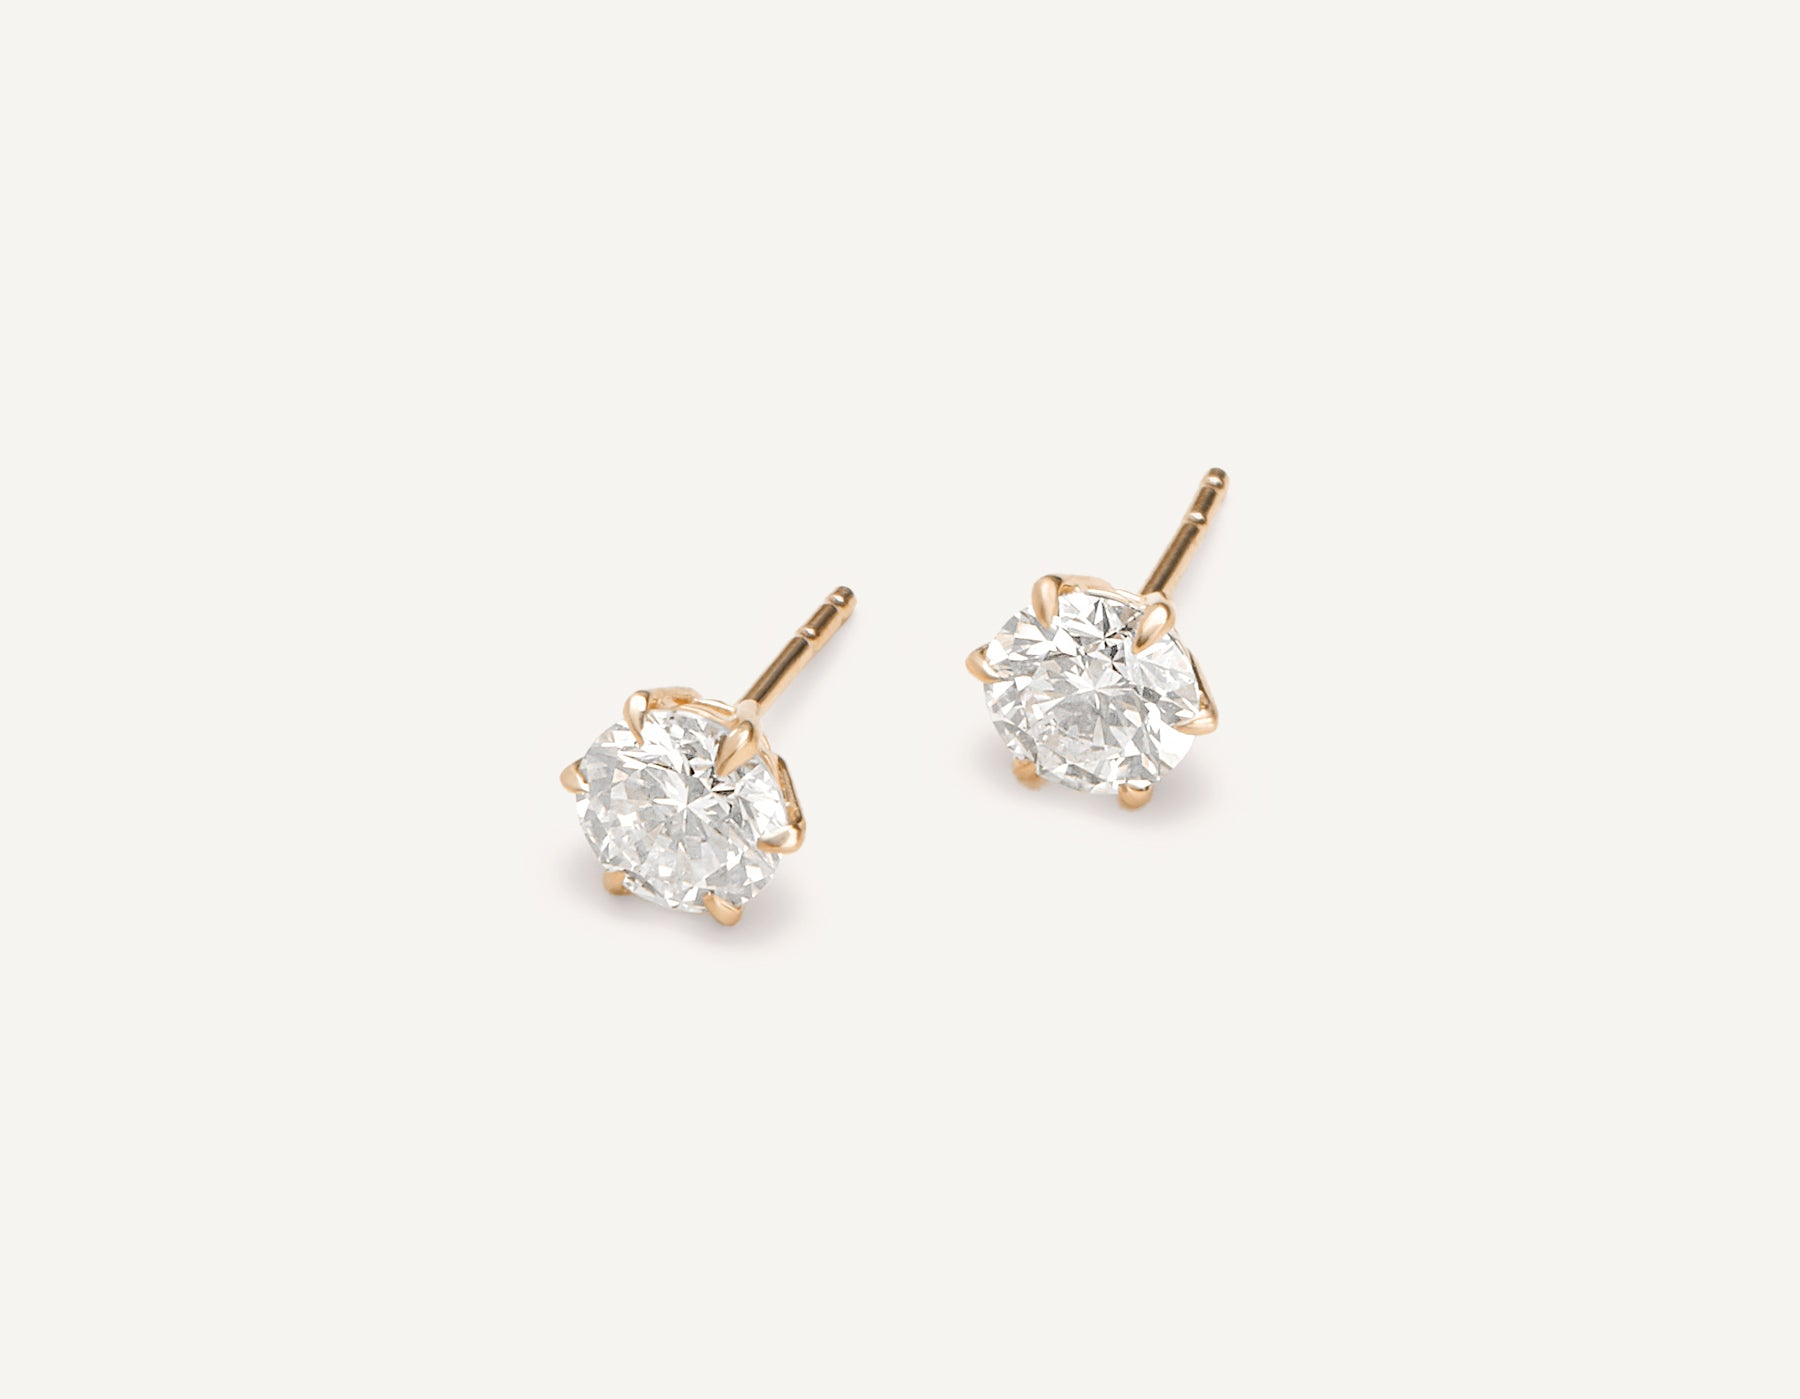 modern minimalist 18k solid gold 1.0 ct Round Brilliant Studs diamond earrings by Vrai & Oro, 18K Rose Gold